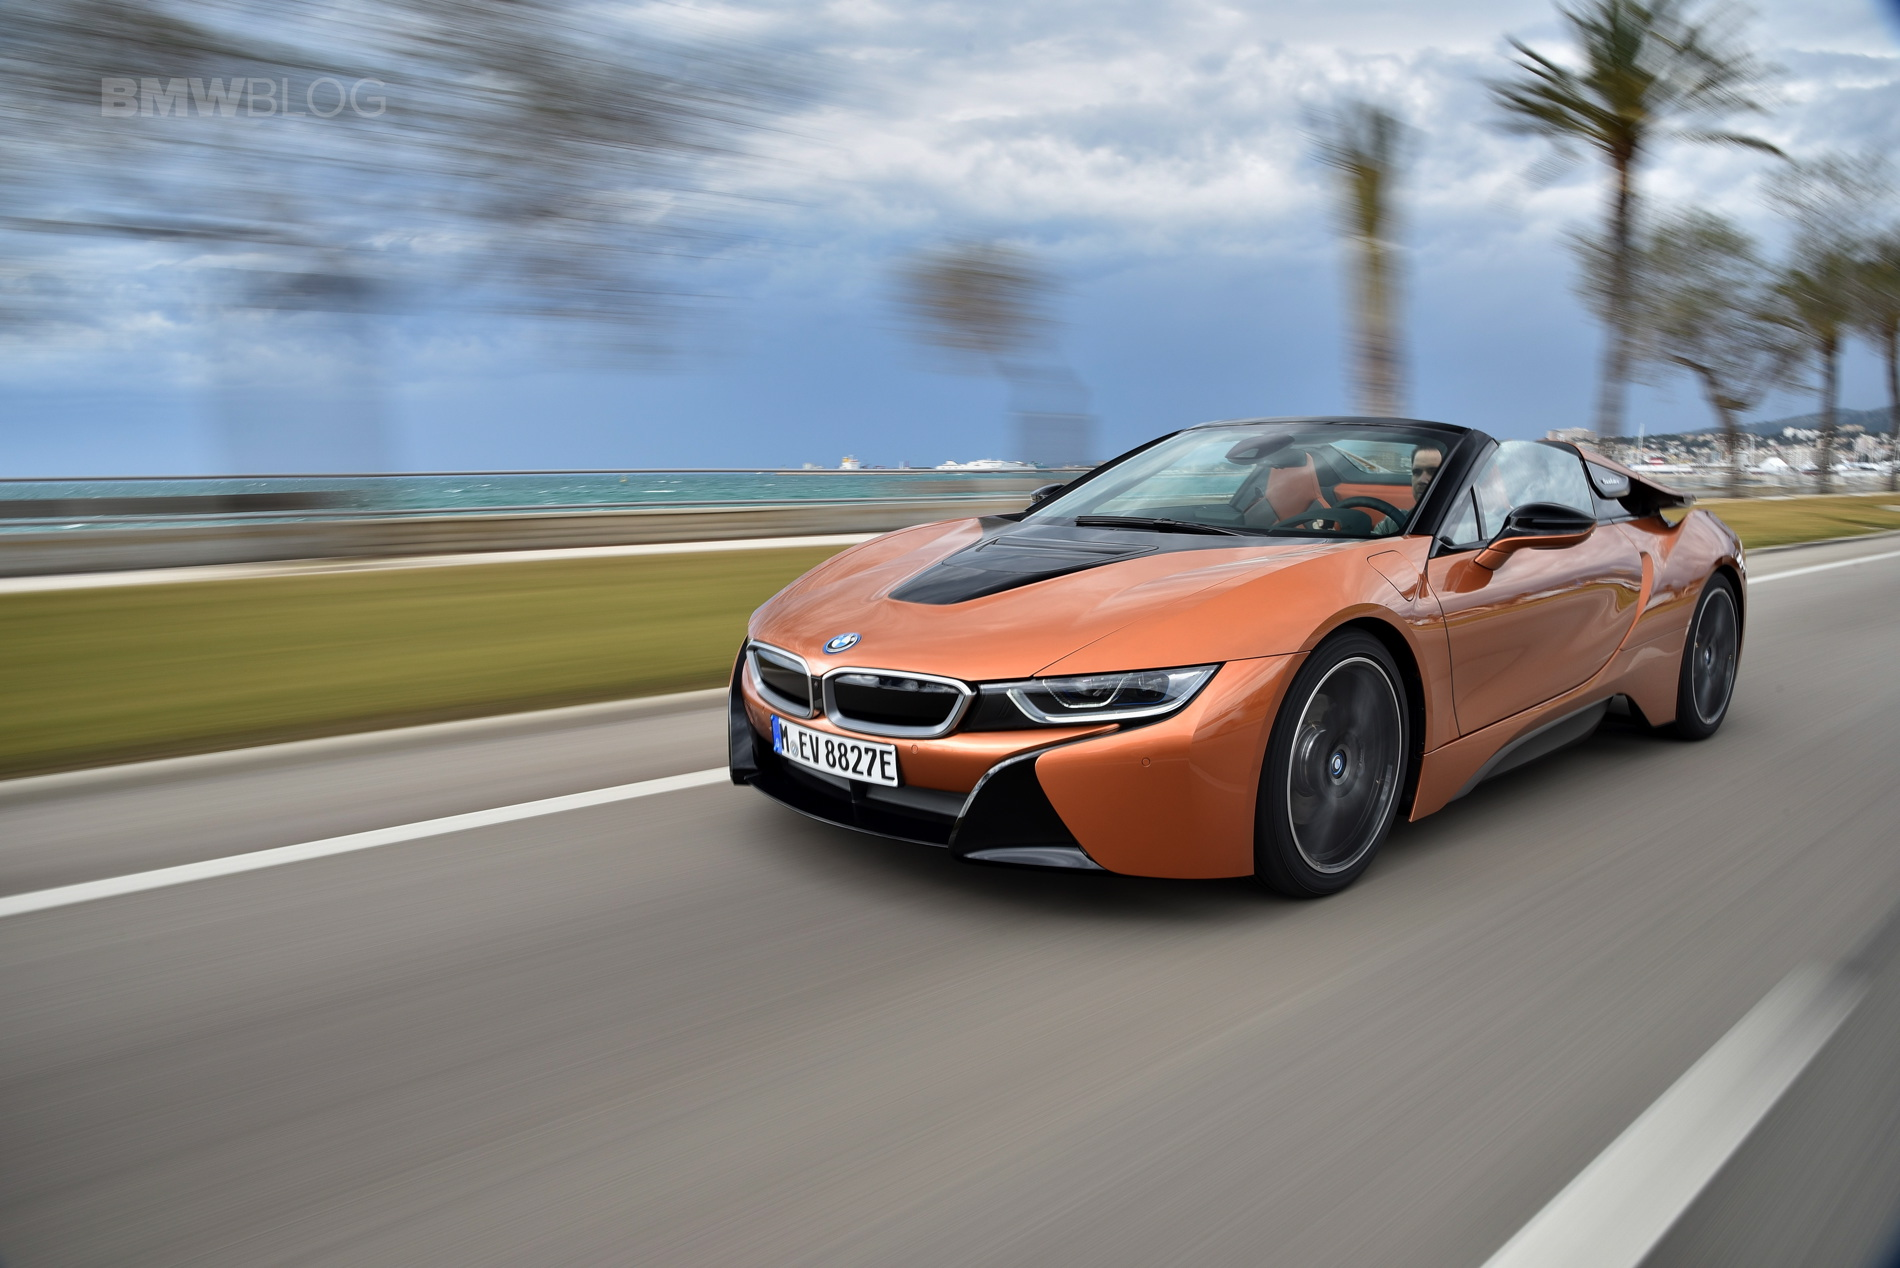 2018 BMW i8 Roadster review 15